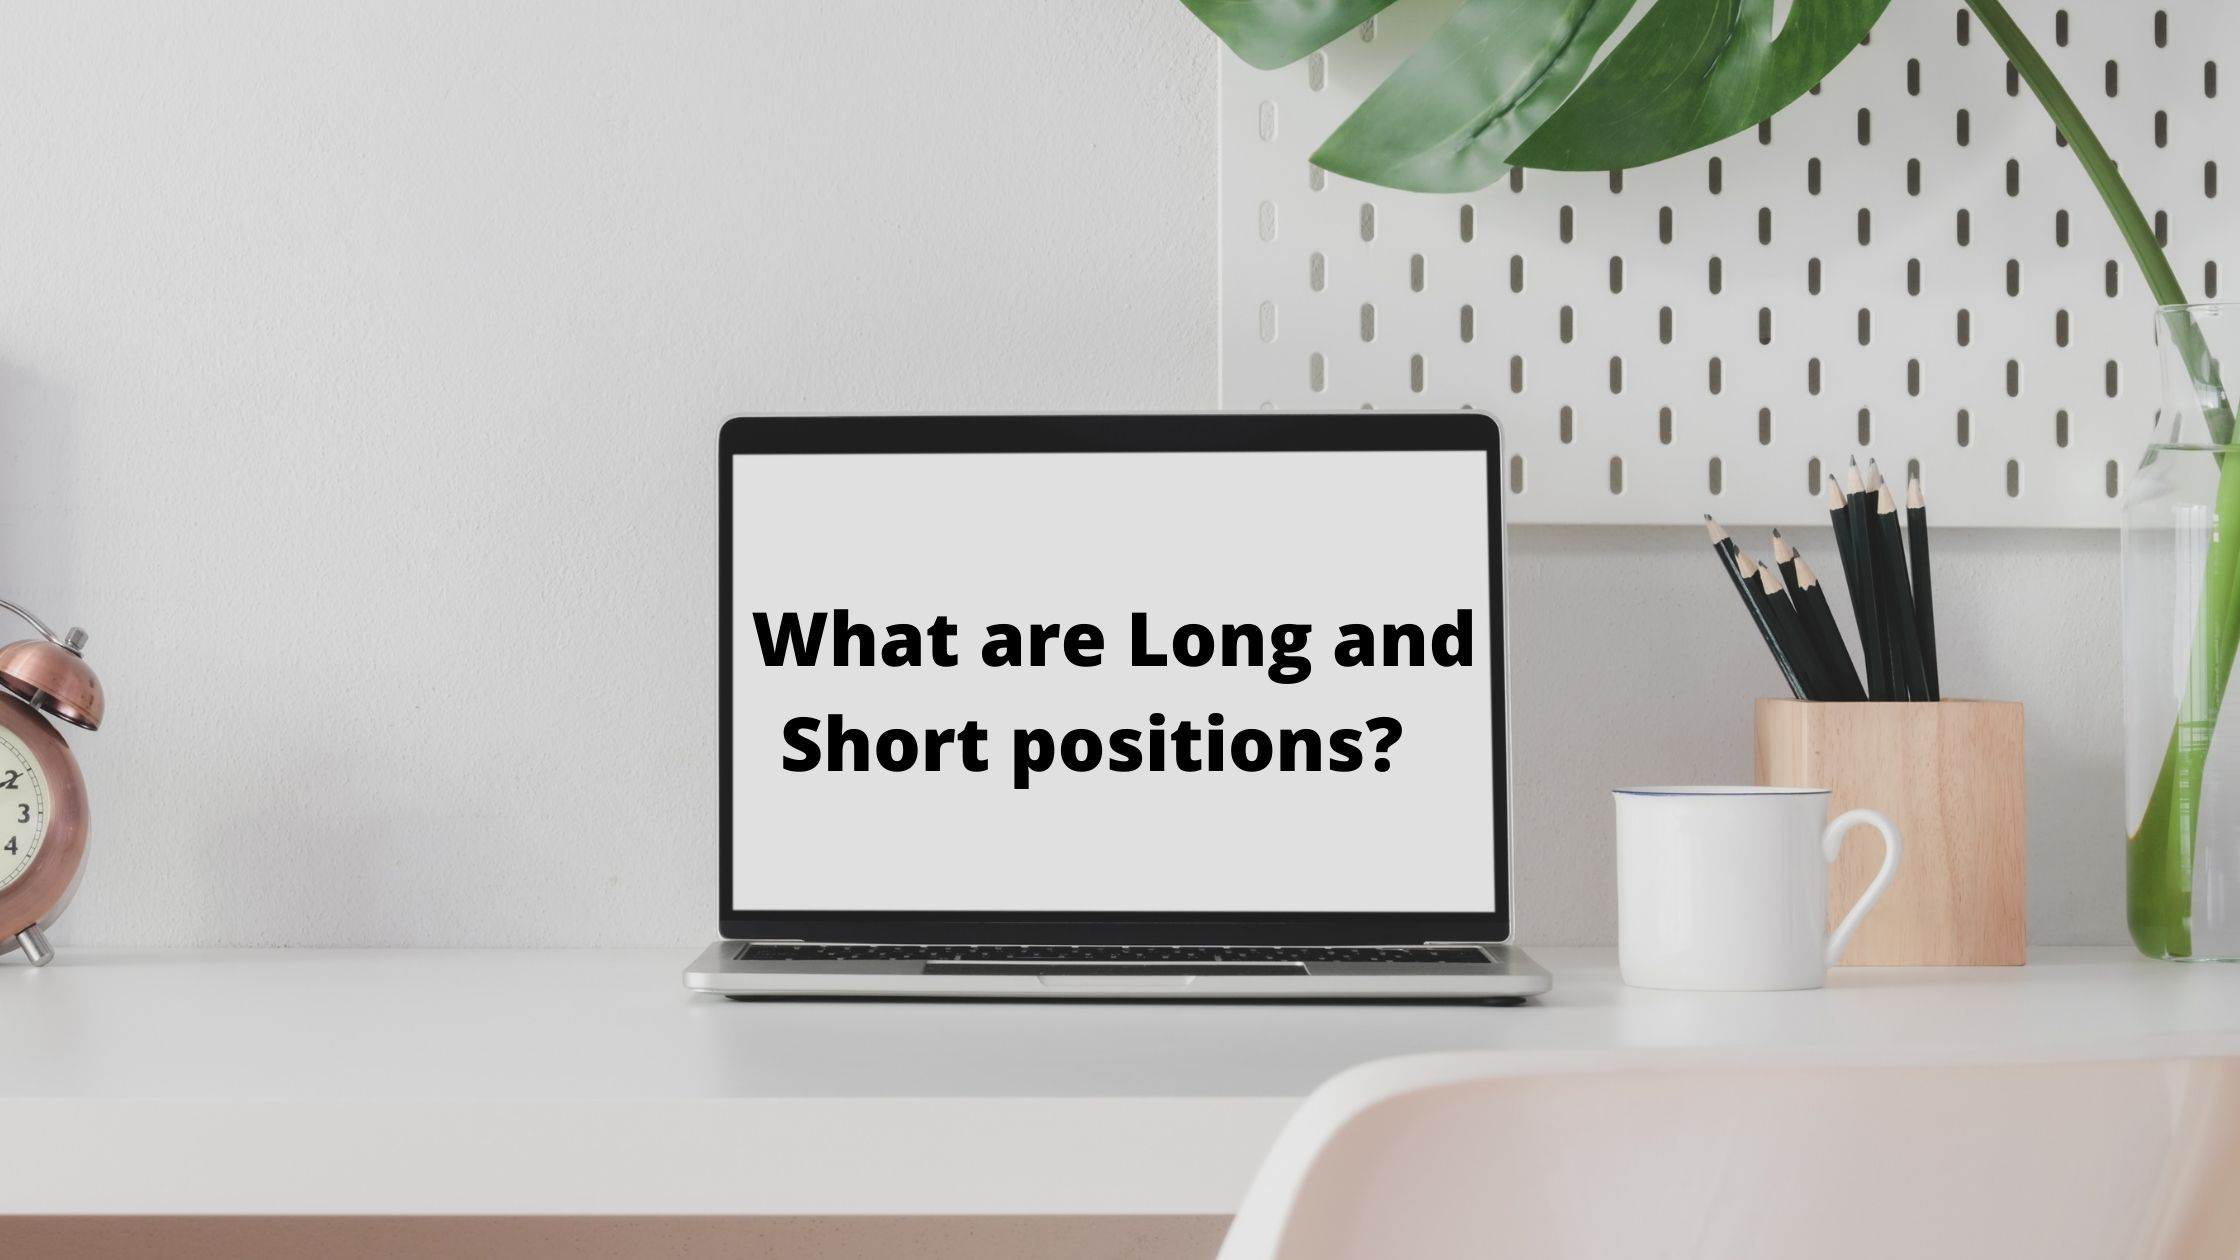 What are Long and Short positions